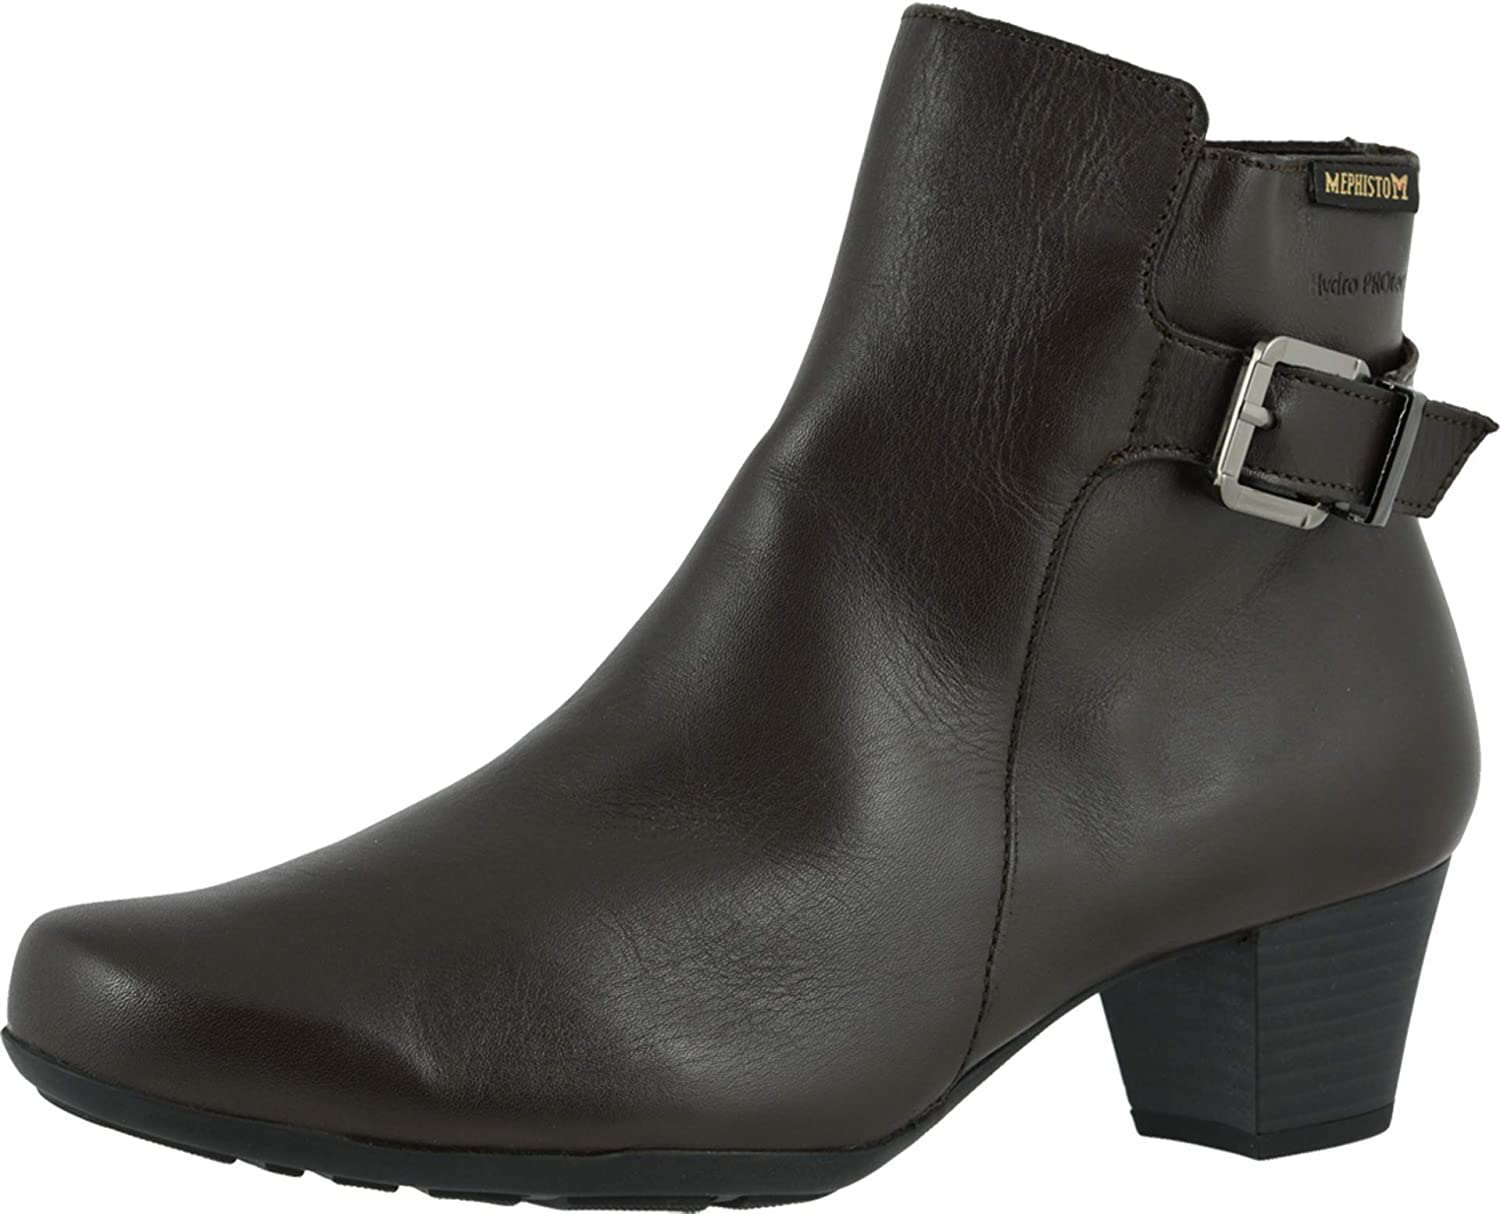 Mephisto Women's Marilia Ankle Boots 100% quality warranty! 67% OFF of fixed price